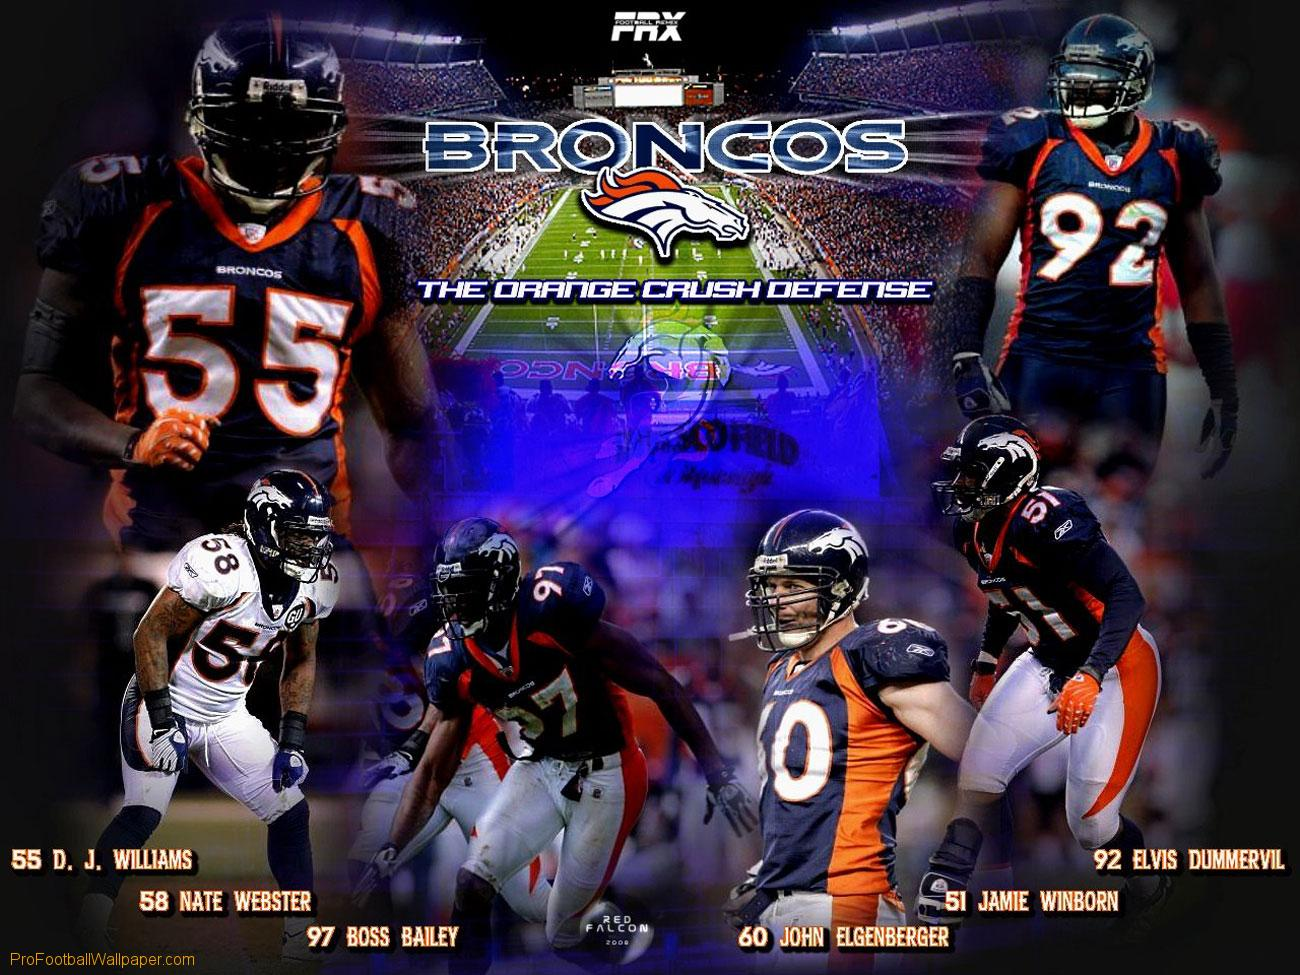 profootballwallpapercomwallpaperBroncos Orange Crush Defense 1300x975